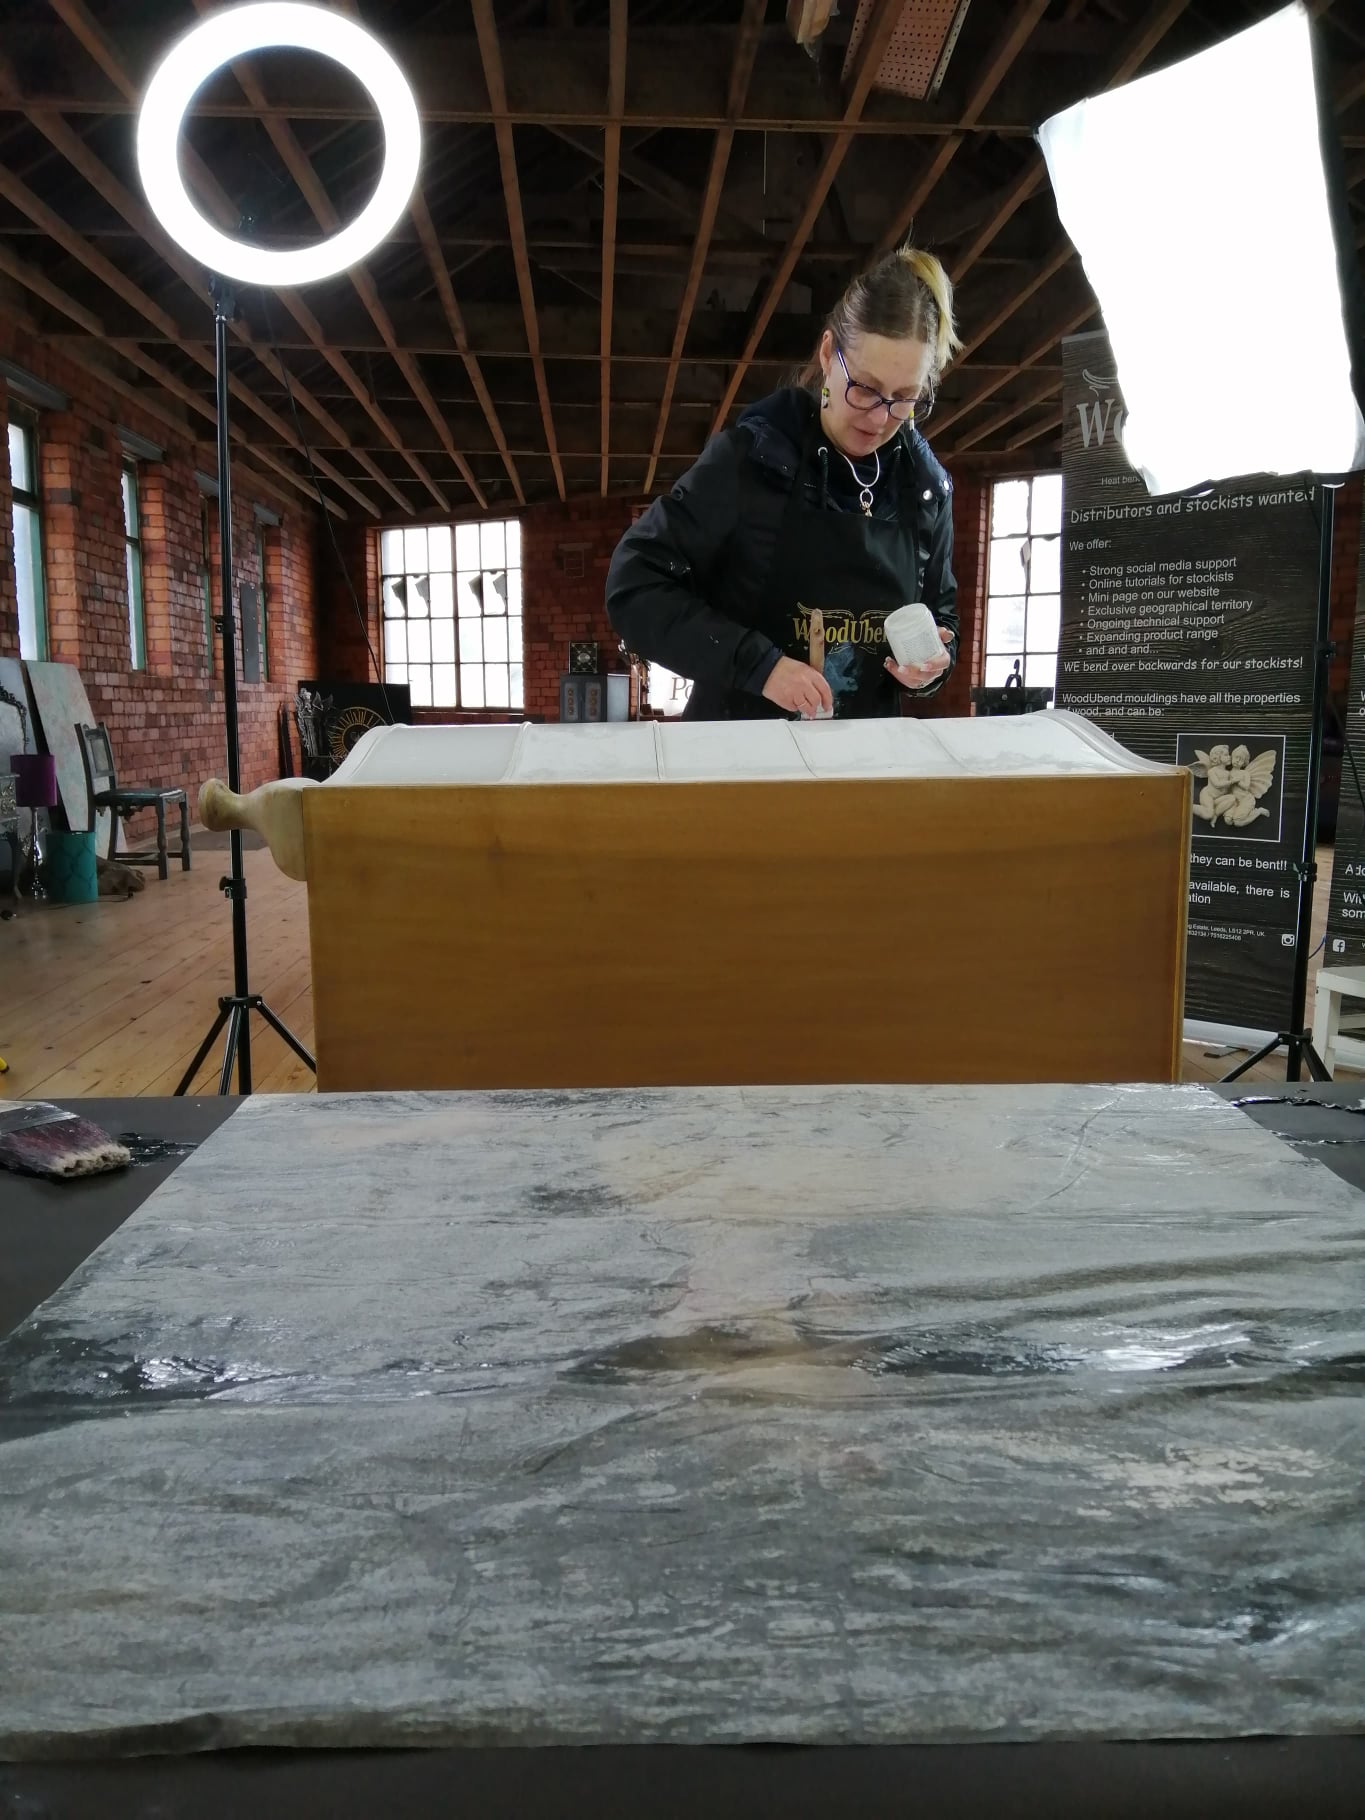 Hope drying off in the foreground as SollyJo repaints her furniture upcycling project.